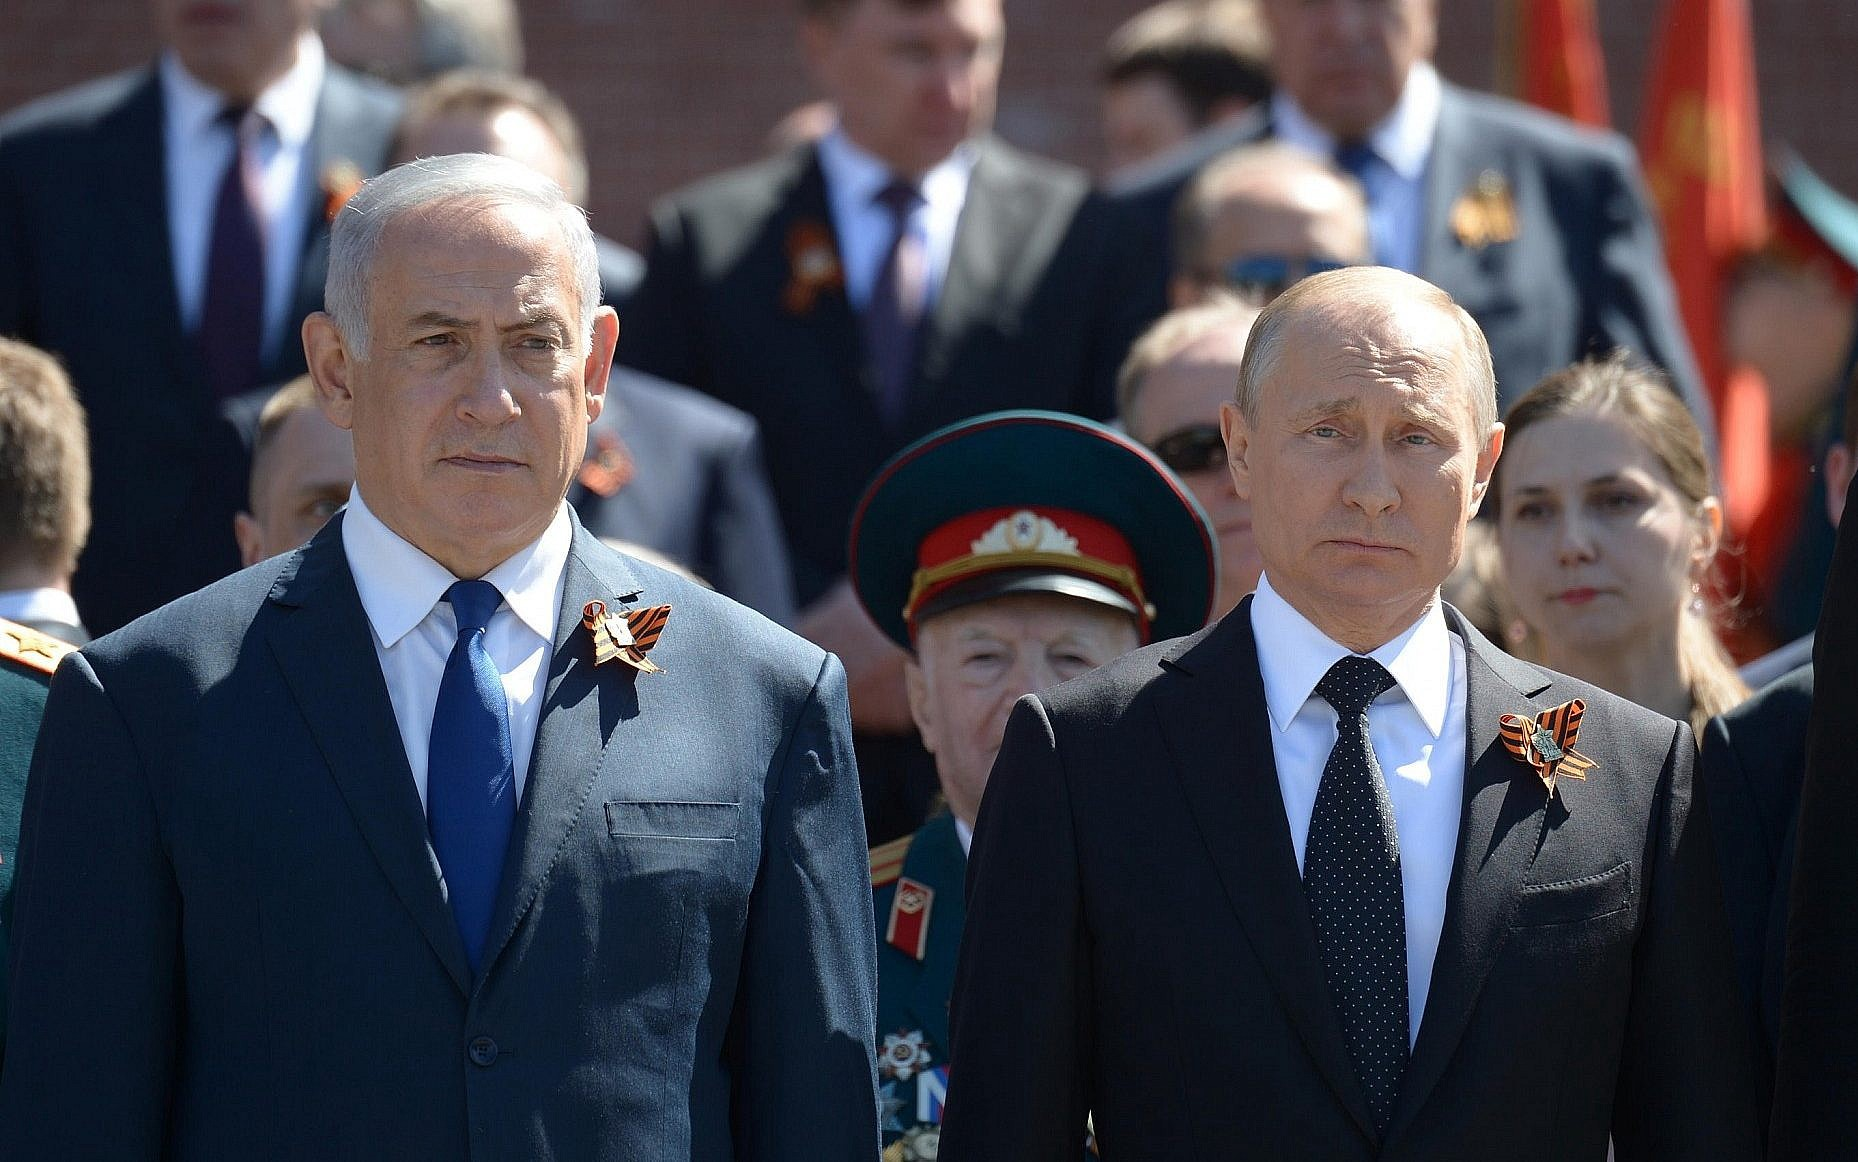 Benjamin Netanyahu wearing a suit and tie standing in front of a crowd